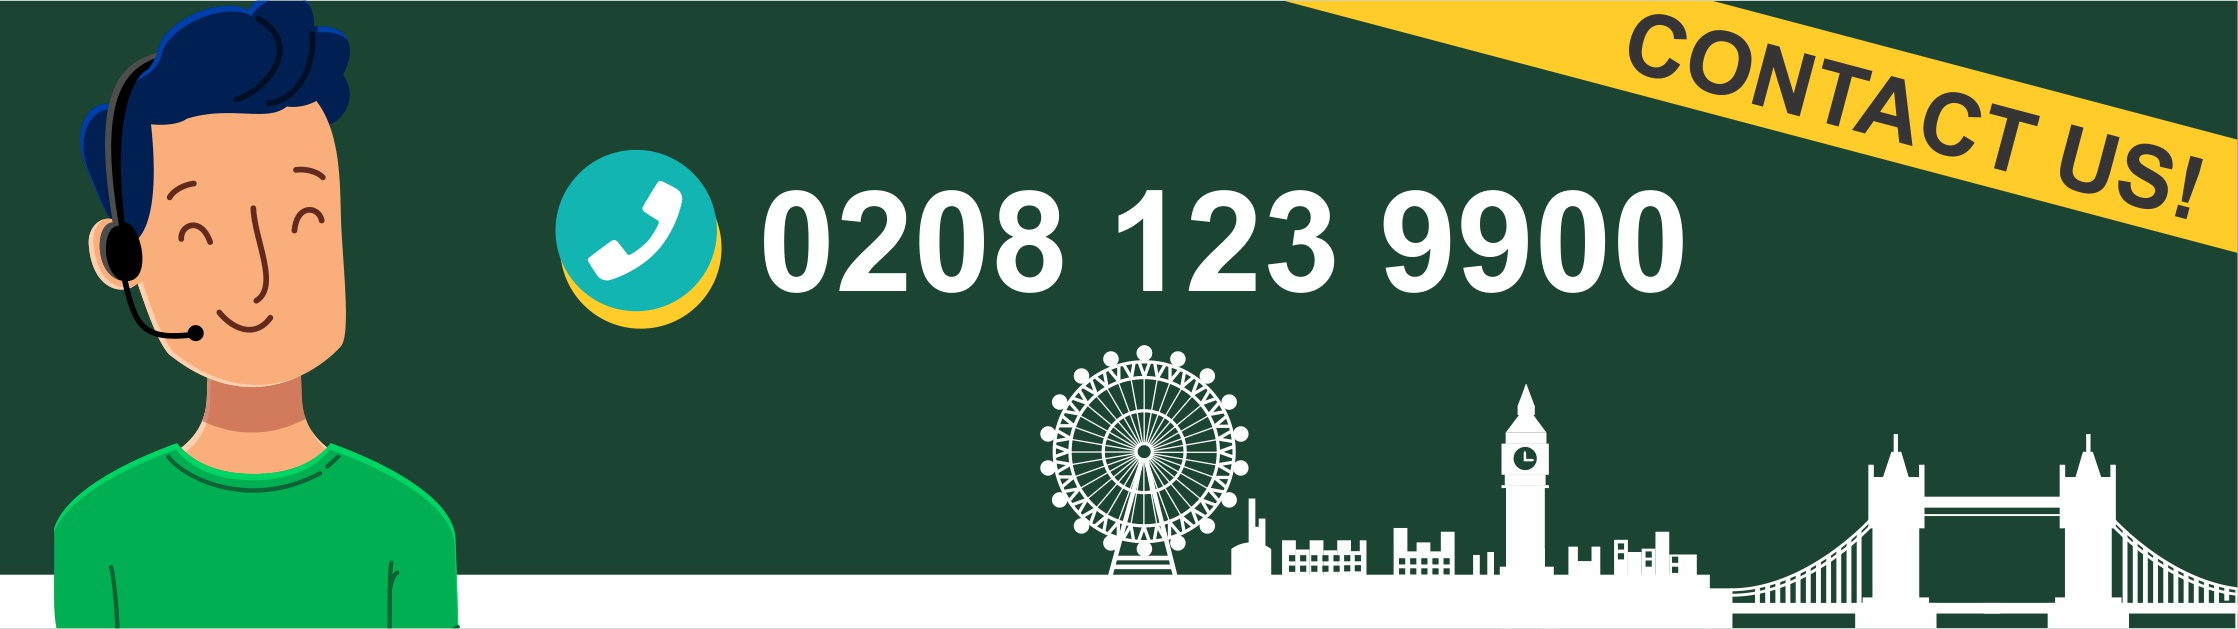 PIA London office Contact Number